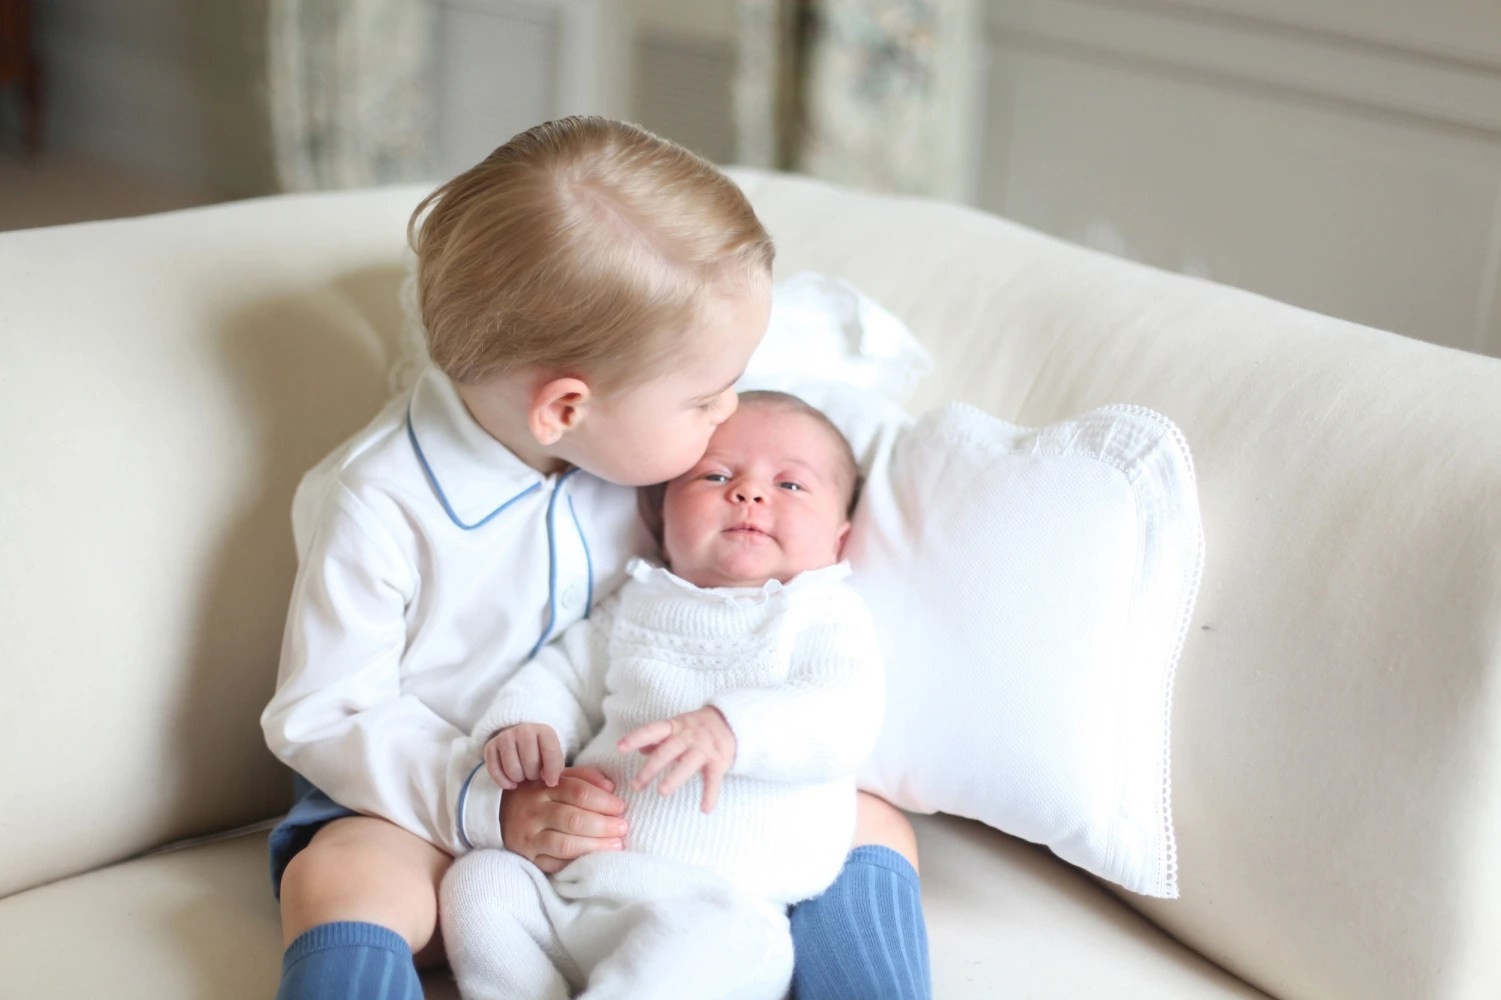 New photo marks Princess Charlotte's second birthday